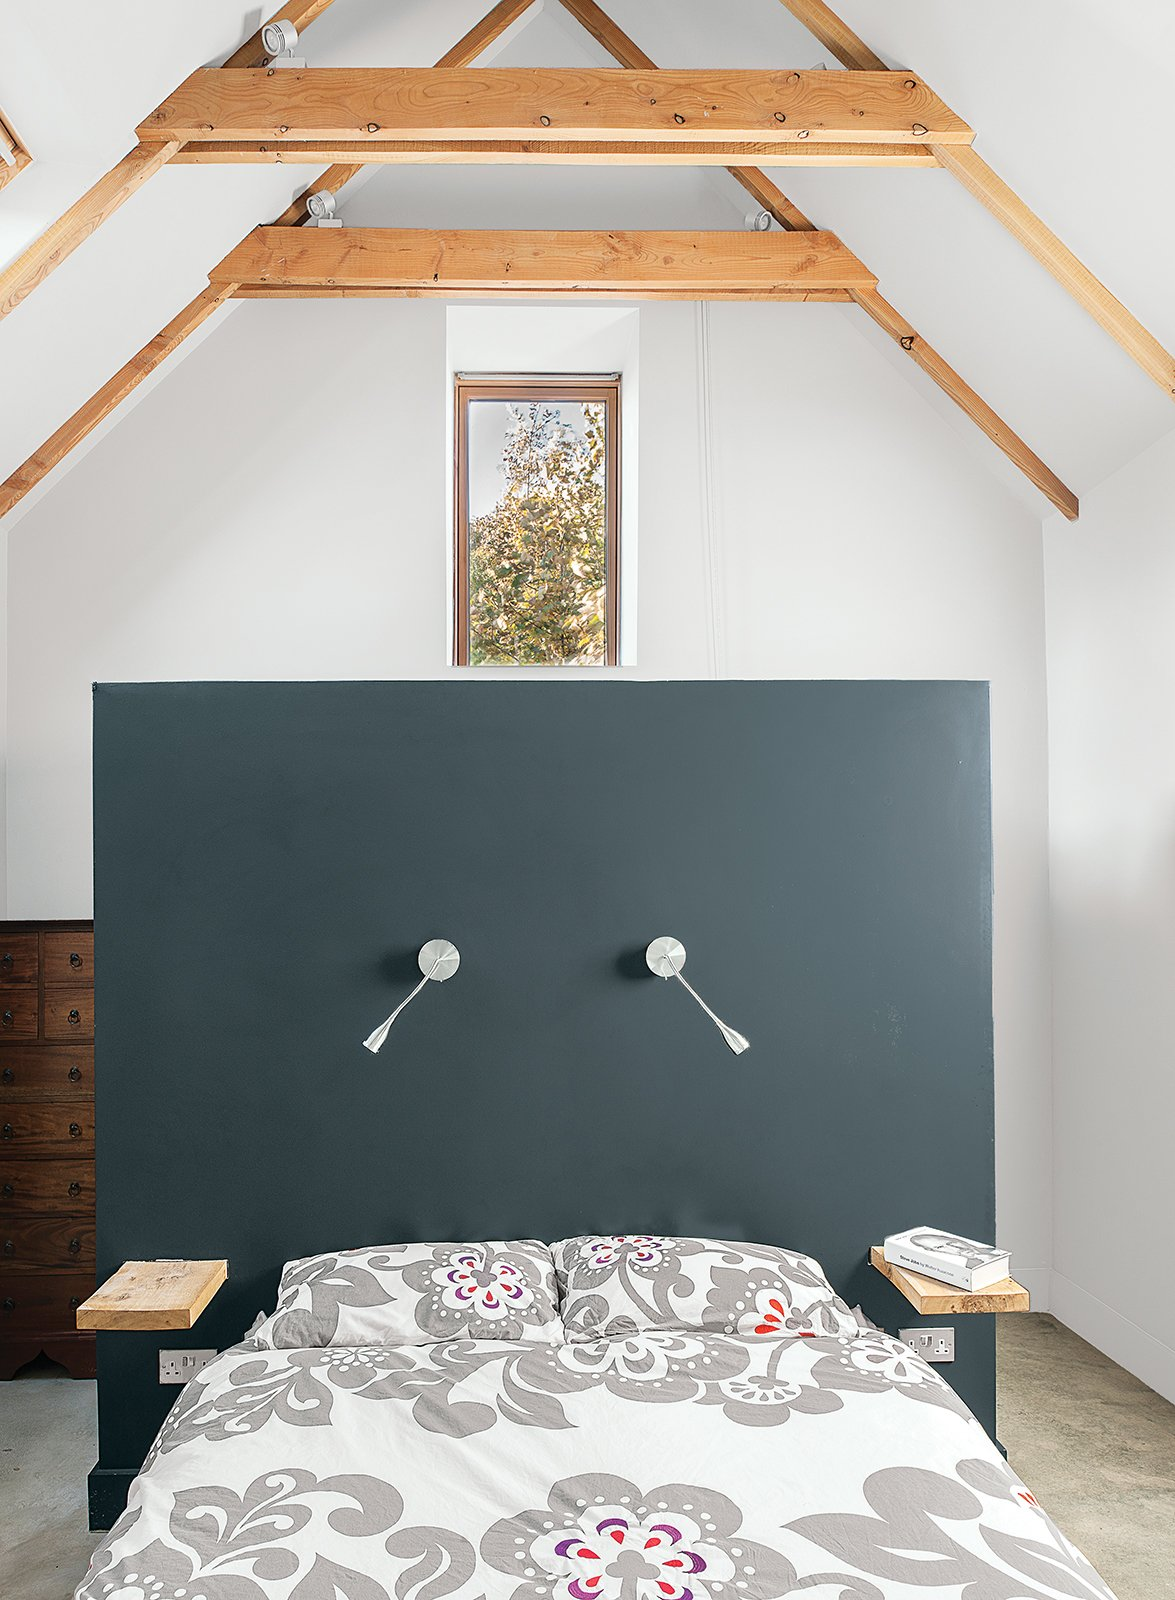 Bedroom, Bed, and Wall Lighting Designer Sue Macintosh chose the Farrow & Ball Off-Black paint for the master bedroom.  Bedrooms by Dwell from This Farmhouse is a Cor-Ten Steel-Clad Dream